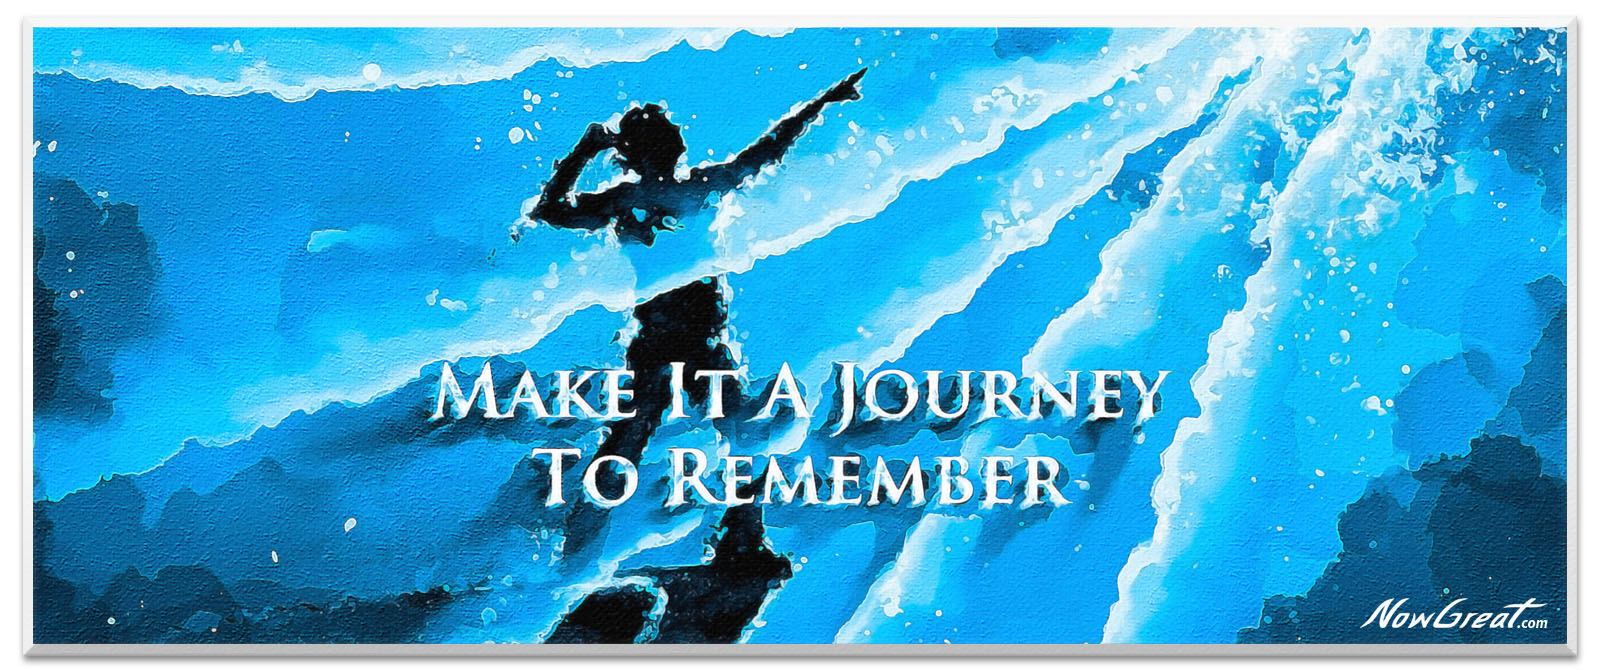 ng-now-great-slider-artwork-art-design-quote-make-it-a-journey-to-remember1